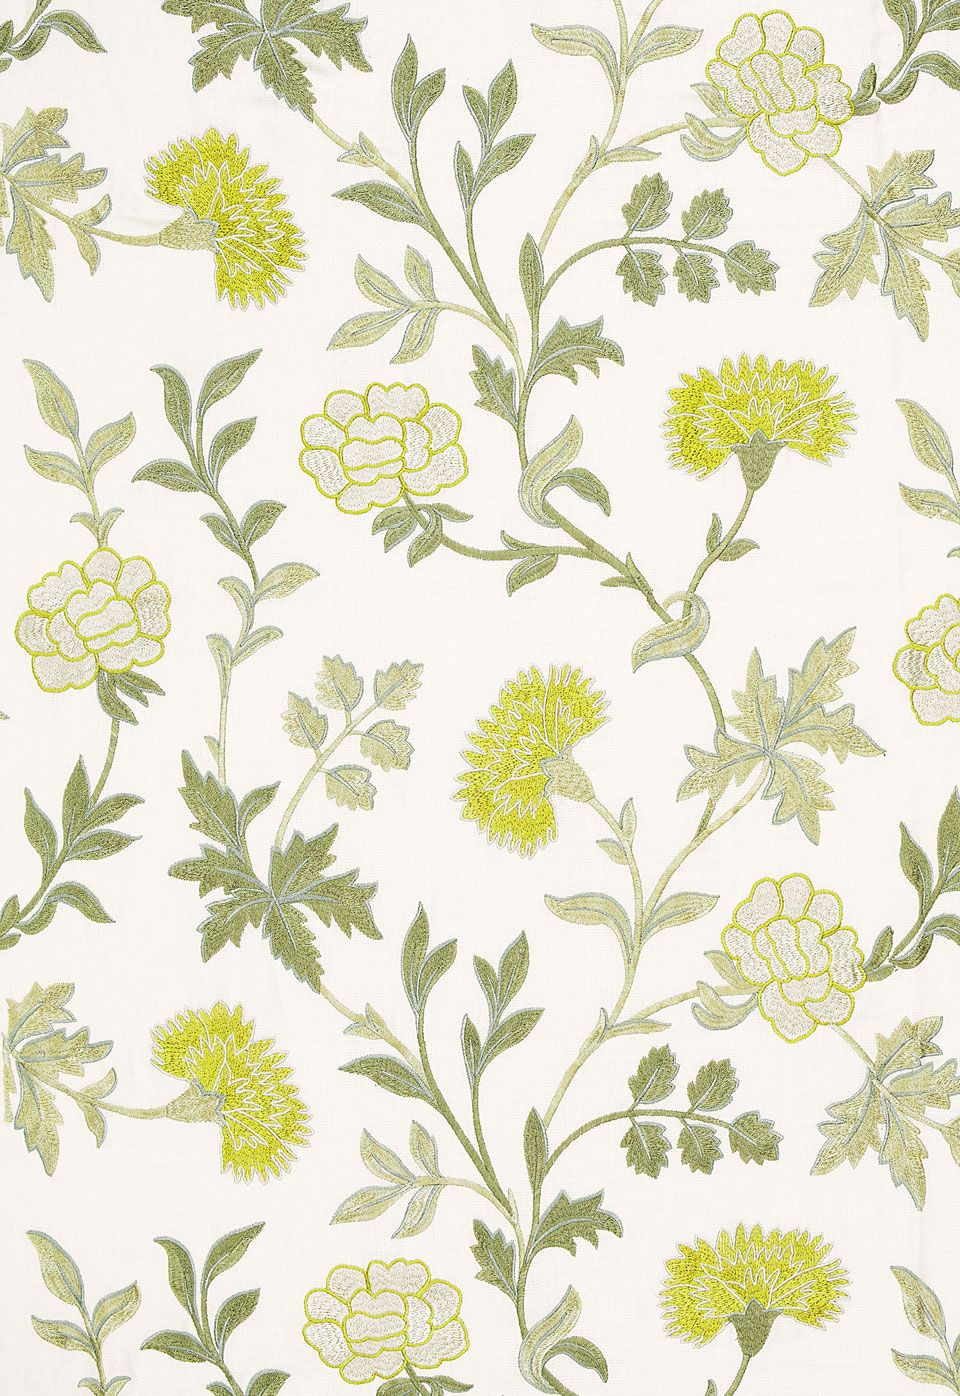 Fabric Sheridan Linen Embroidery In Chartreuse Schumacher 花